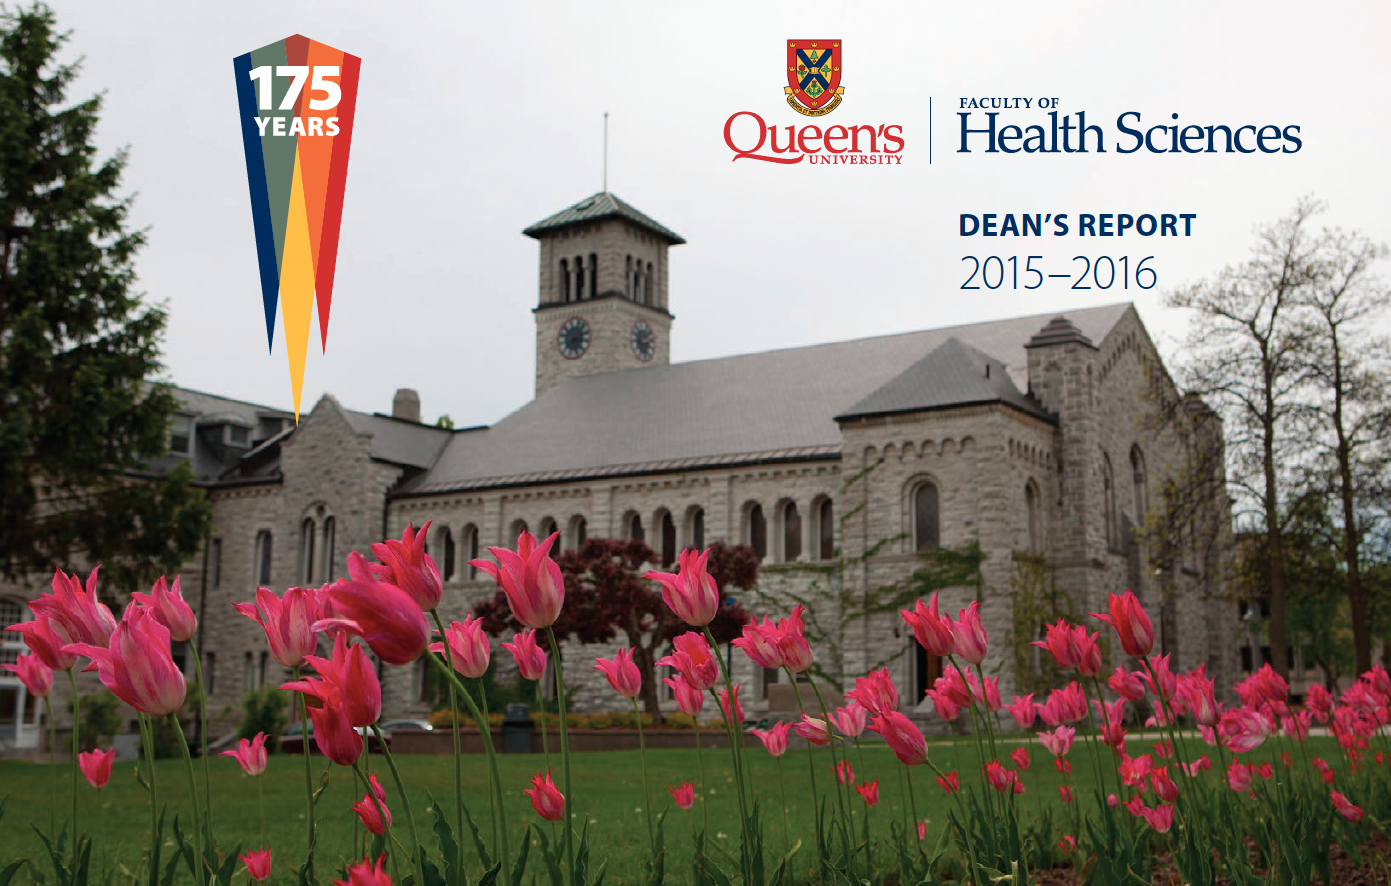 Dean's Report : Faculty of Health Sciences 2015-2016